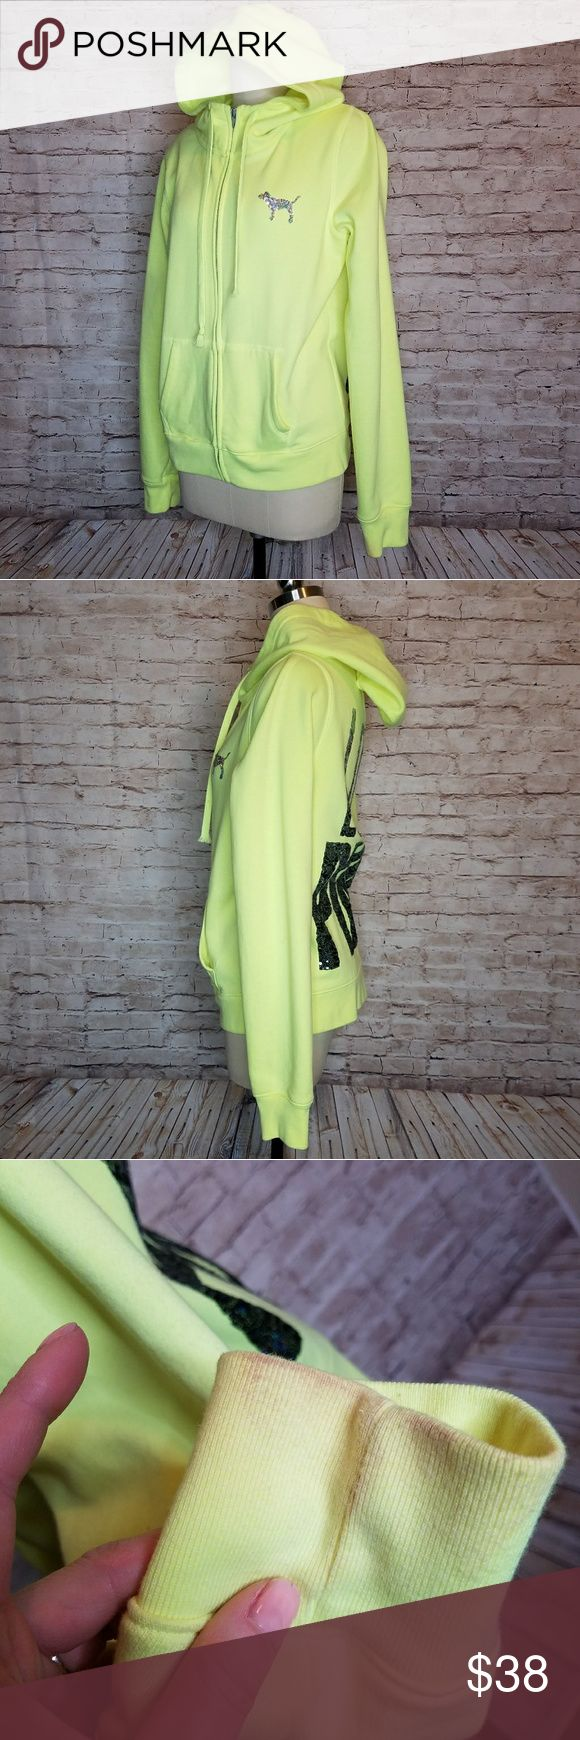 Victoria secret Pink Neon Yellow Sequin hoodie Up for consideration is a preowned womens VS Pink hoodie.  This top has some makeup marks on sleeves at hands and small marks overall. Great used condition !  Pit to pit approx 20in  Shoulder to hem approx 23in  /bin DD/ Victoria's Secret Tops Sweatshirts & Hoodies